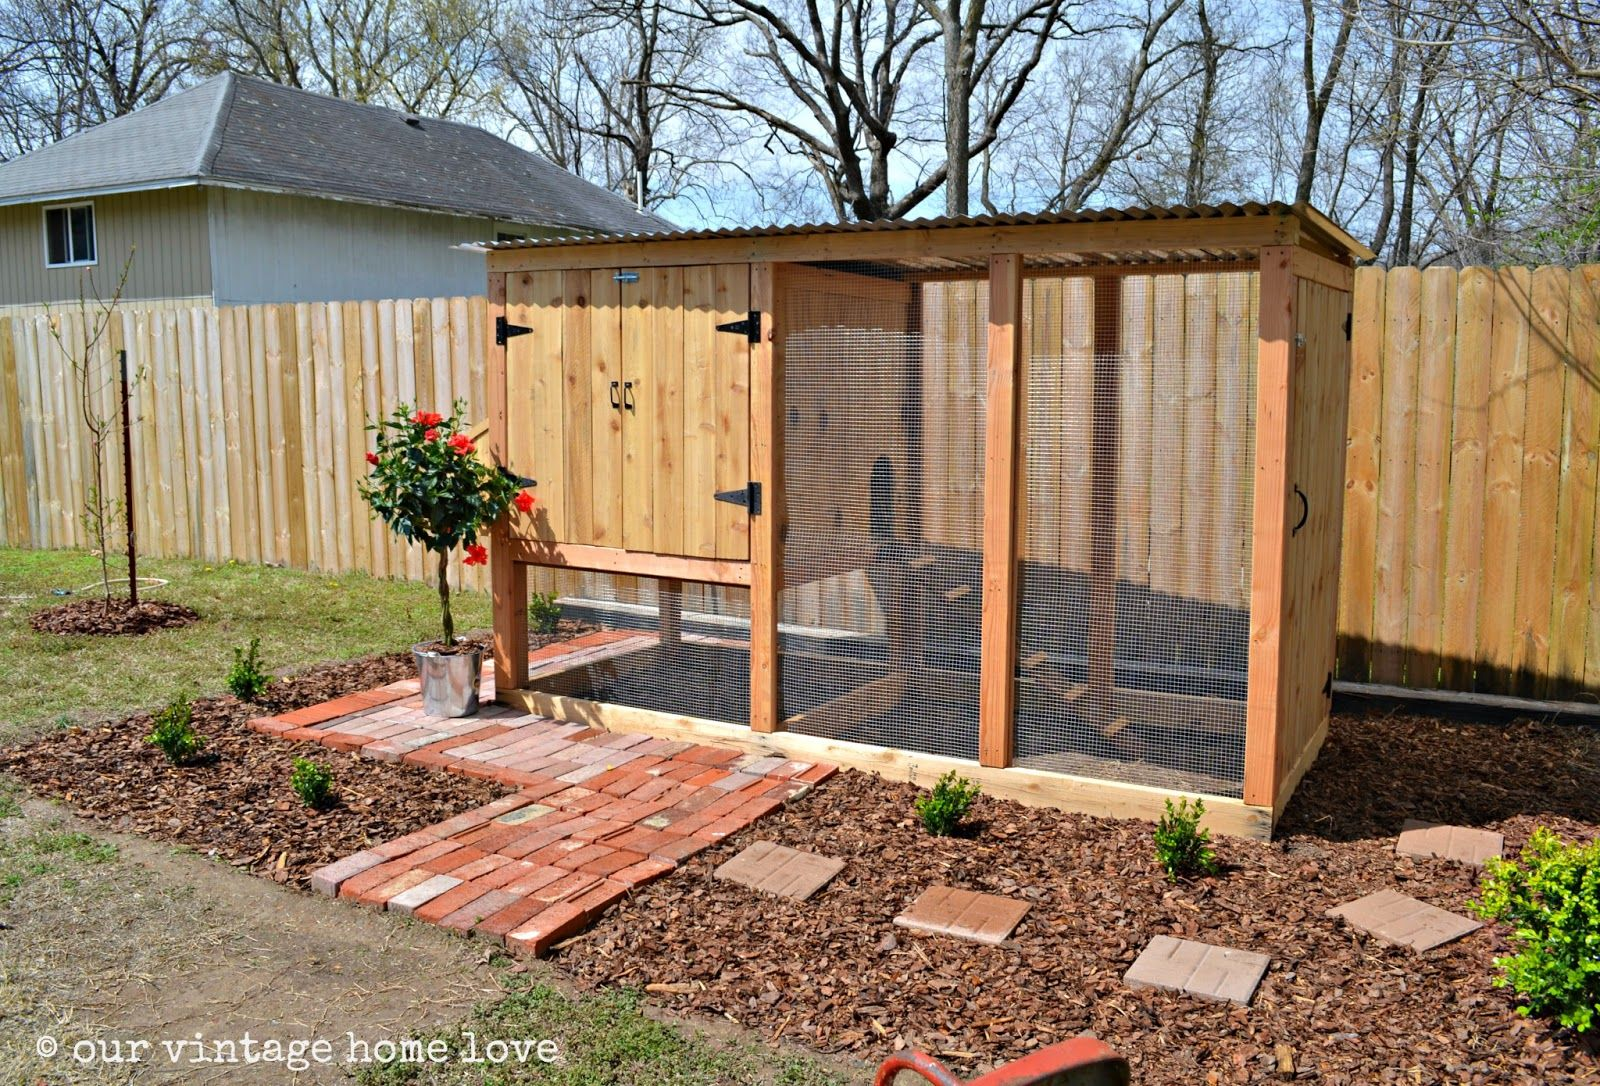 Perfect Portable Chicken Coop Chickens Backyard Mobile Chicken Coop Simple chicken house design for backyard farming